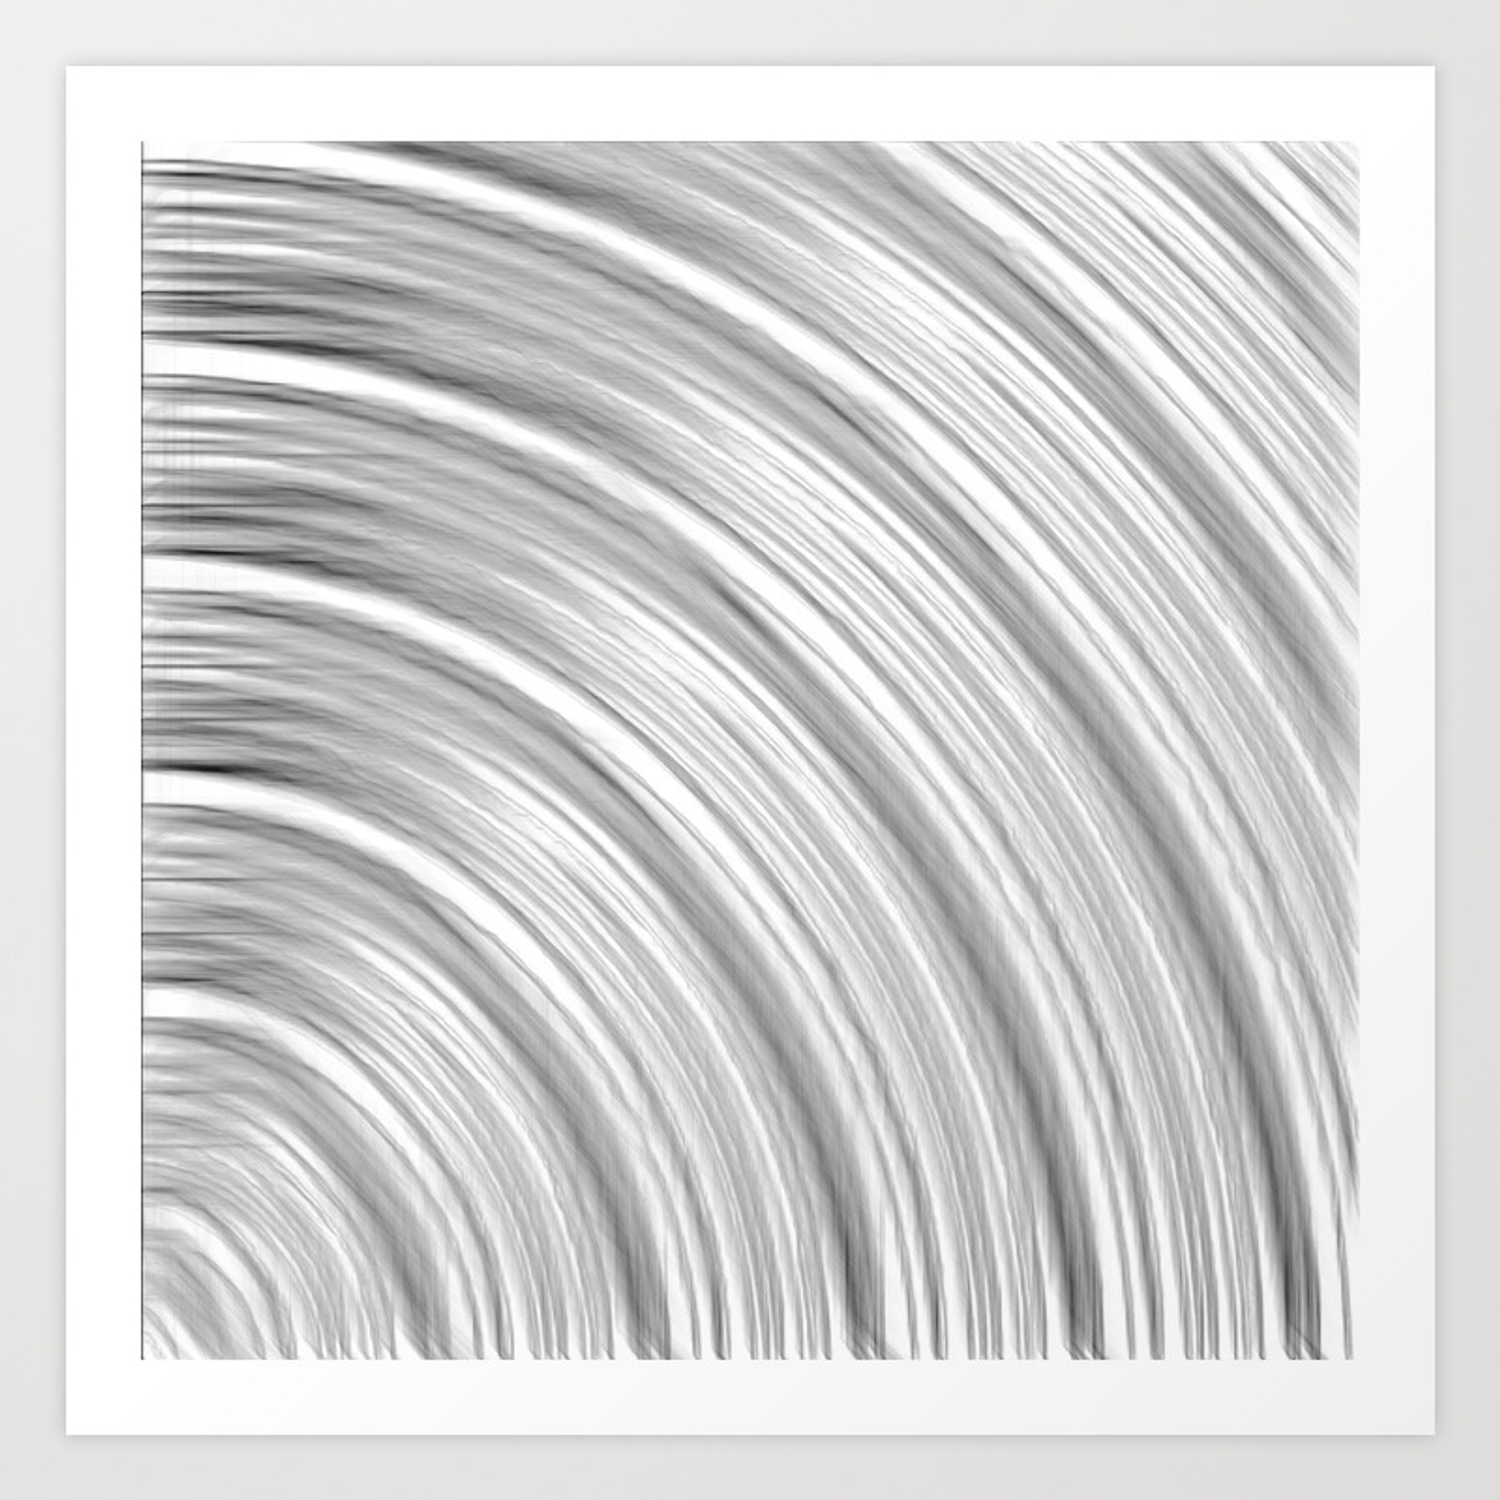 Pencil drawing line pattern abstract in black and white art print